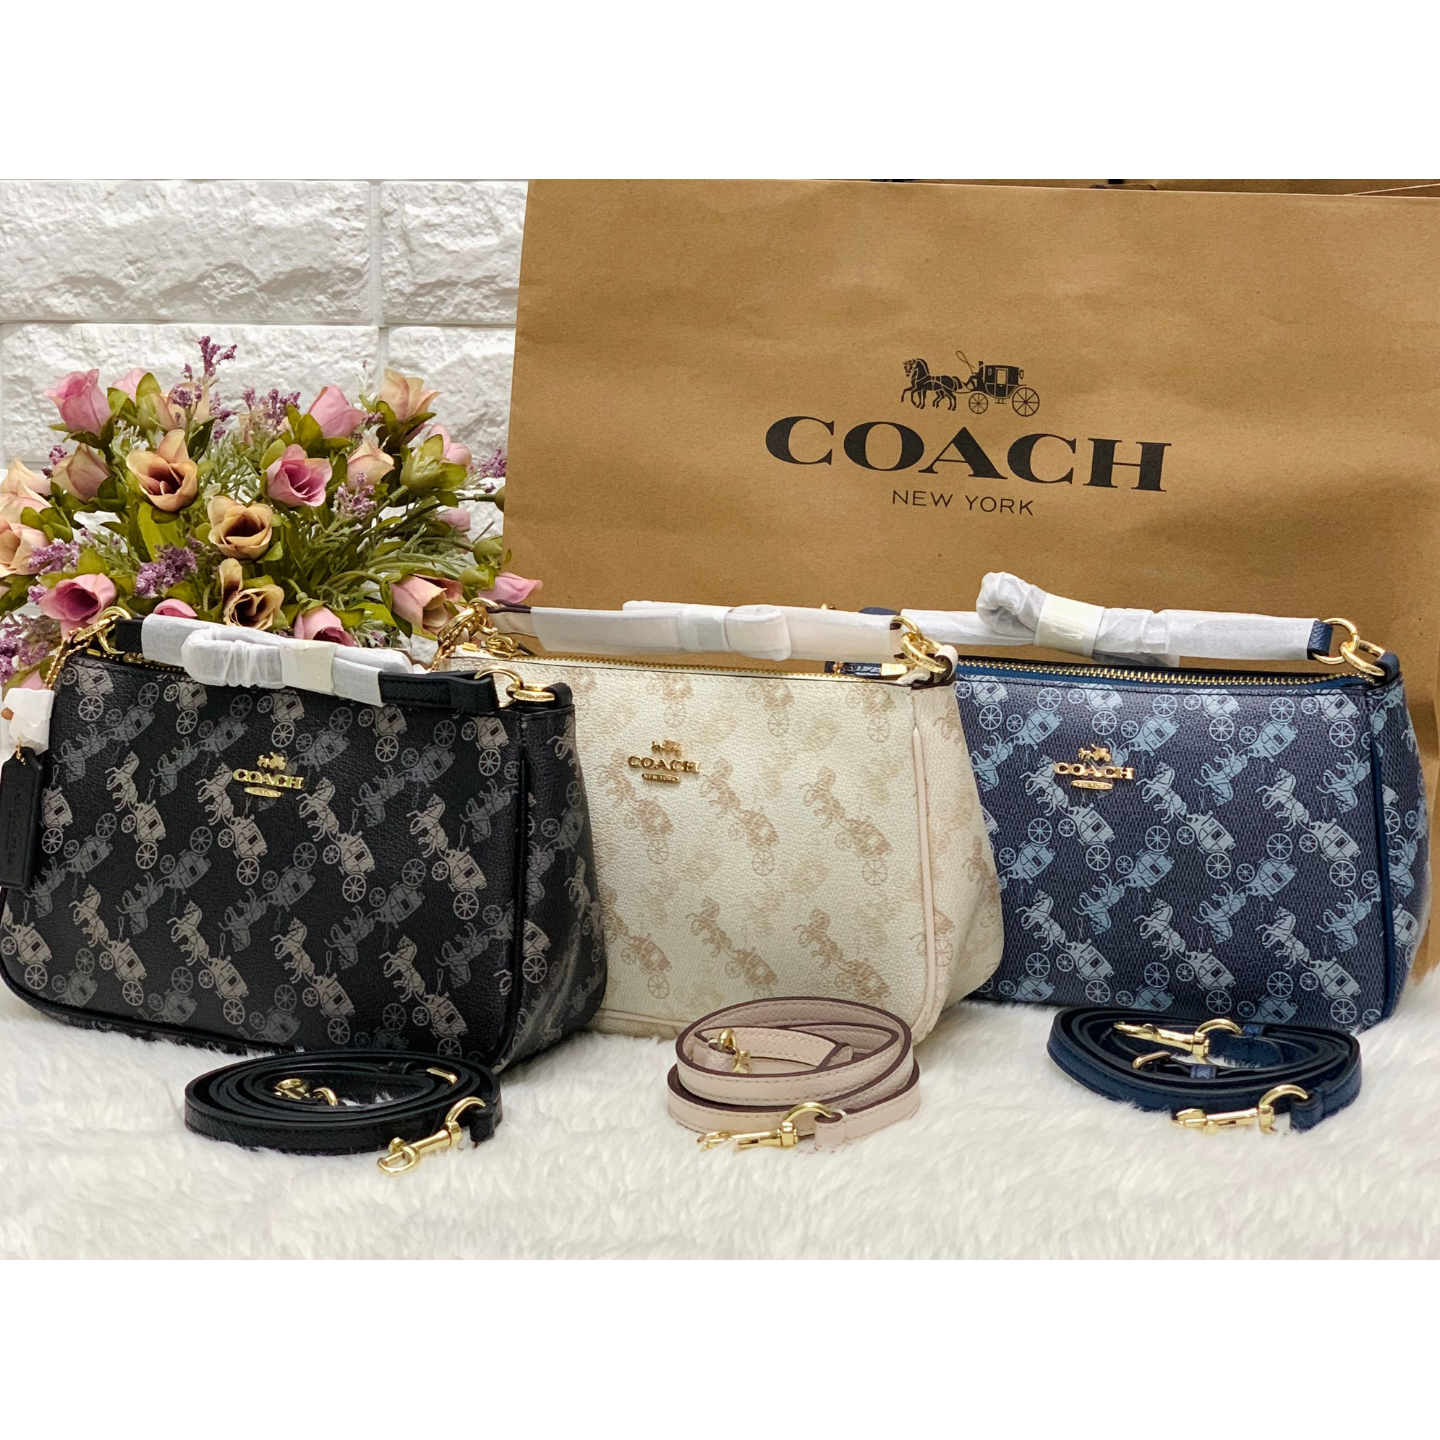 Coach F36674 Handbag Sling Bag Ladies Women